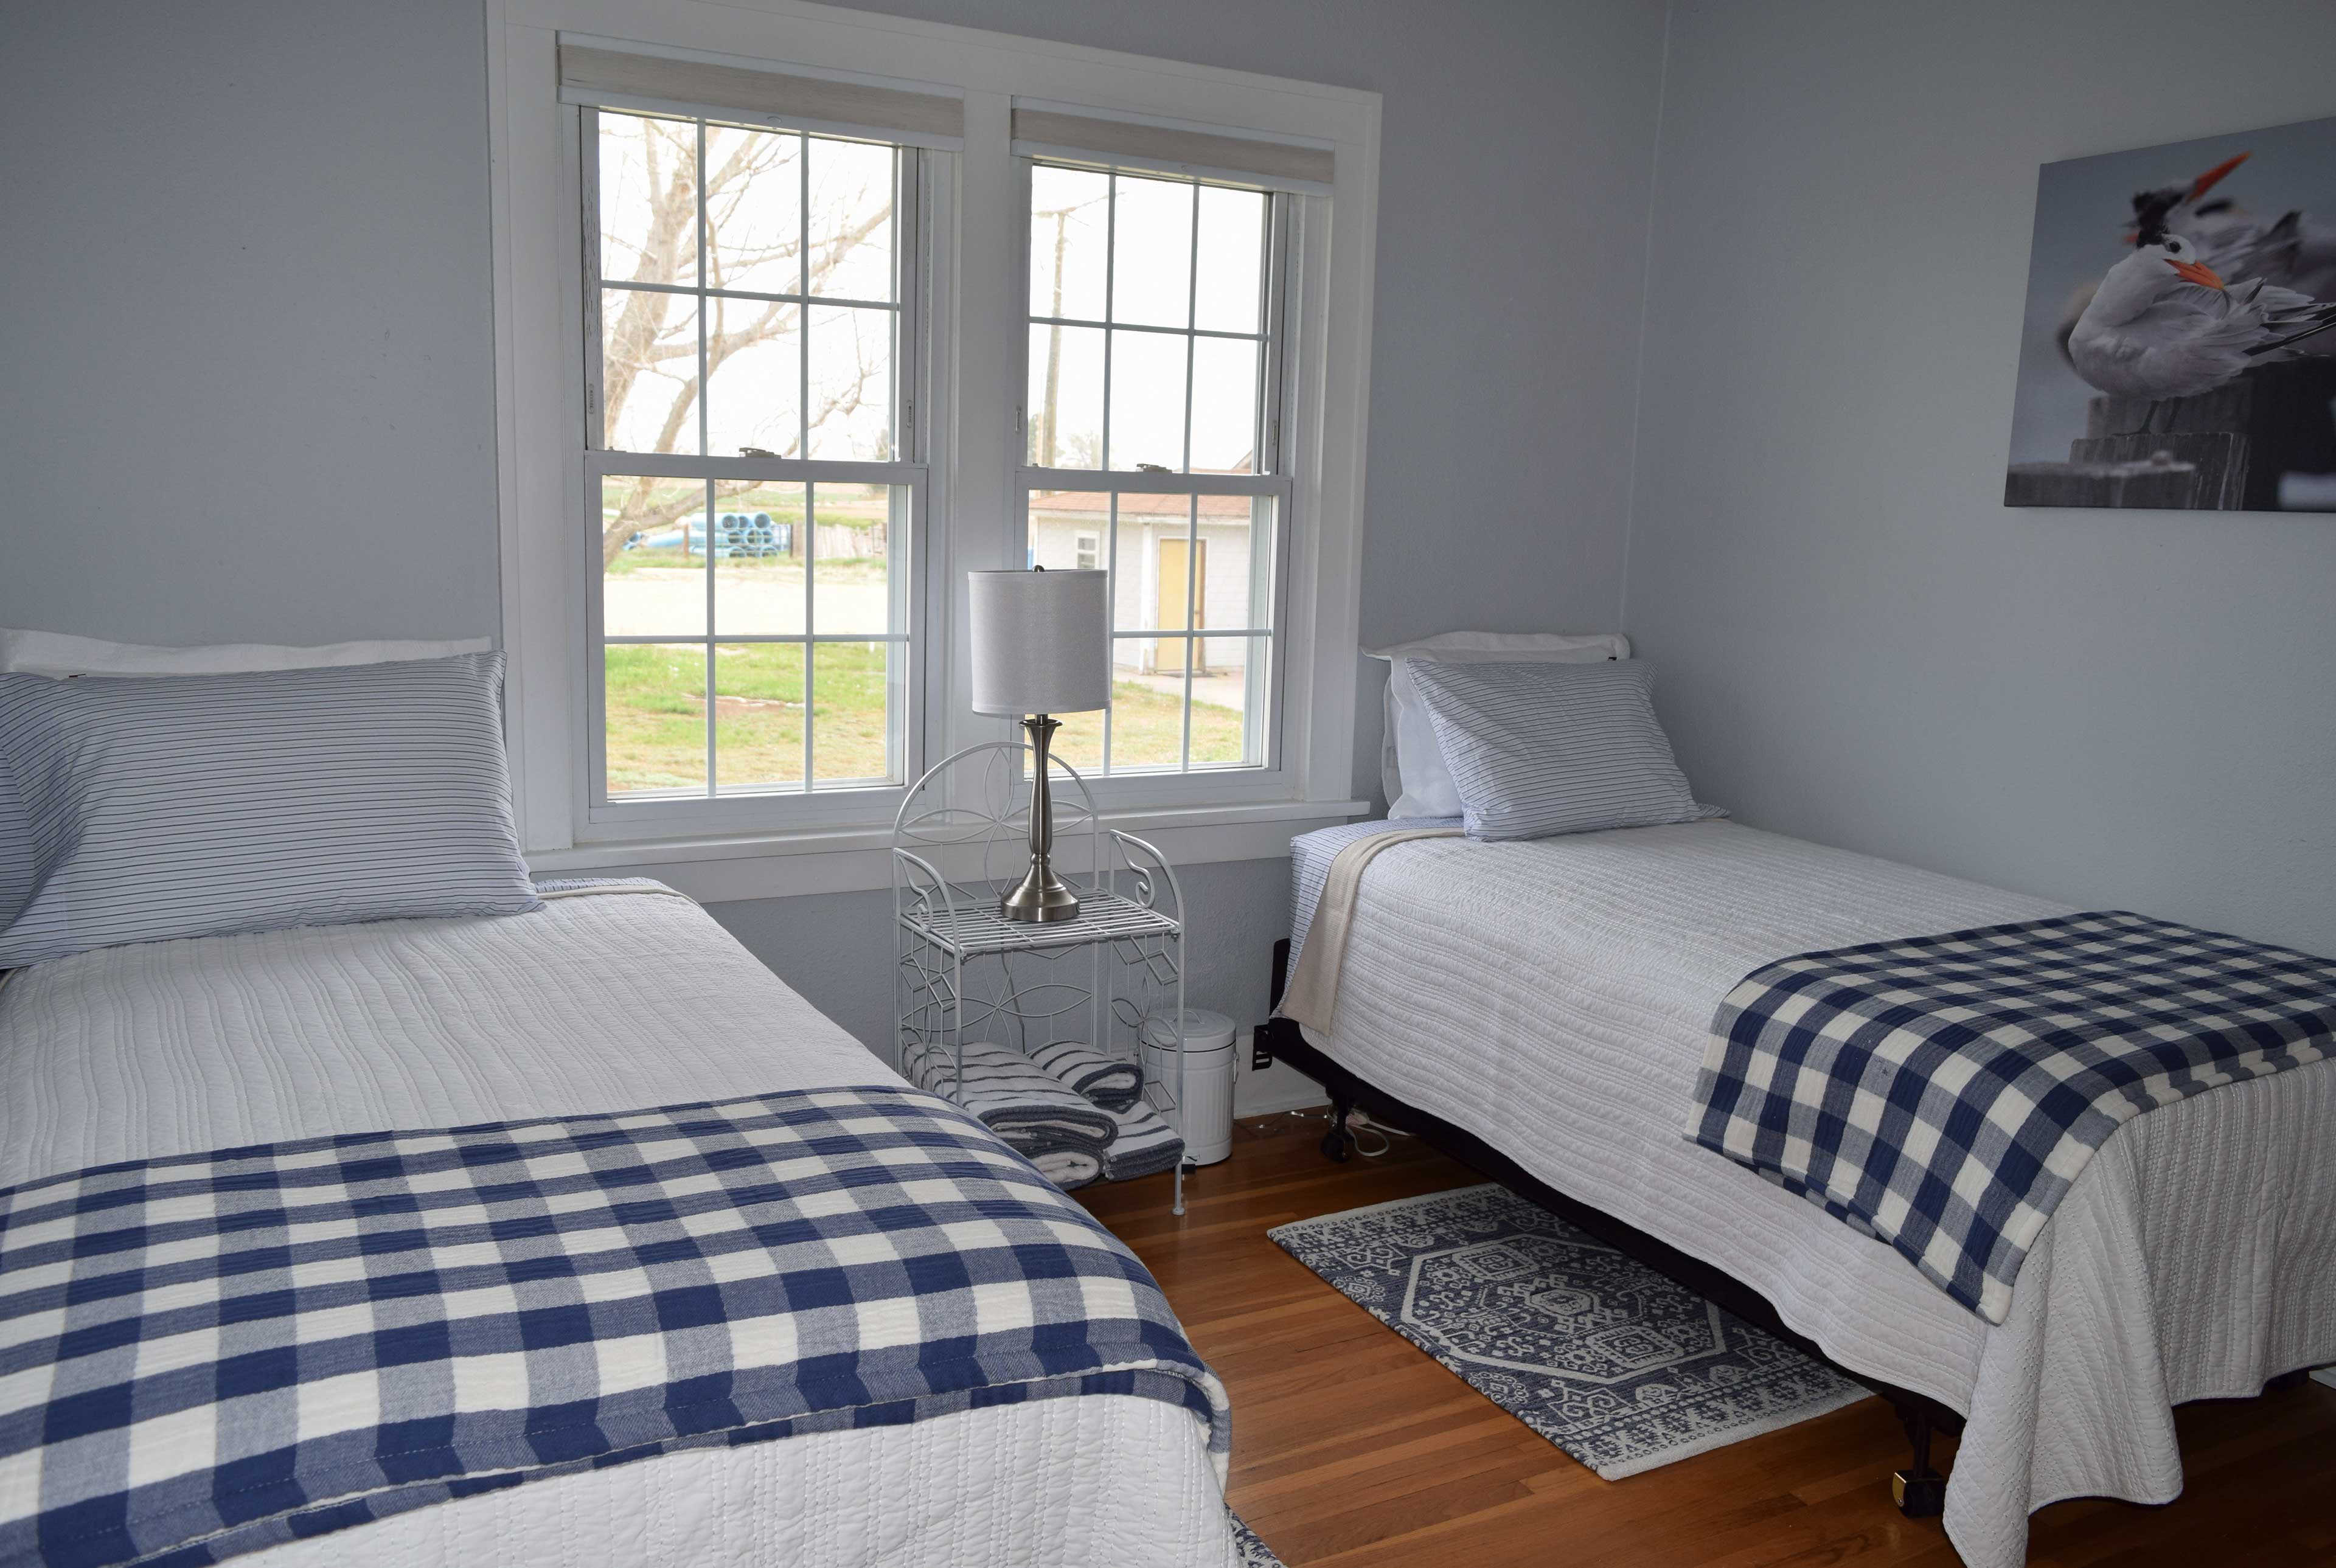 Kids will love sharing the second bedroom!